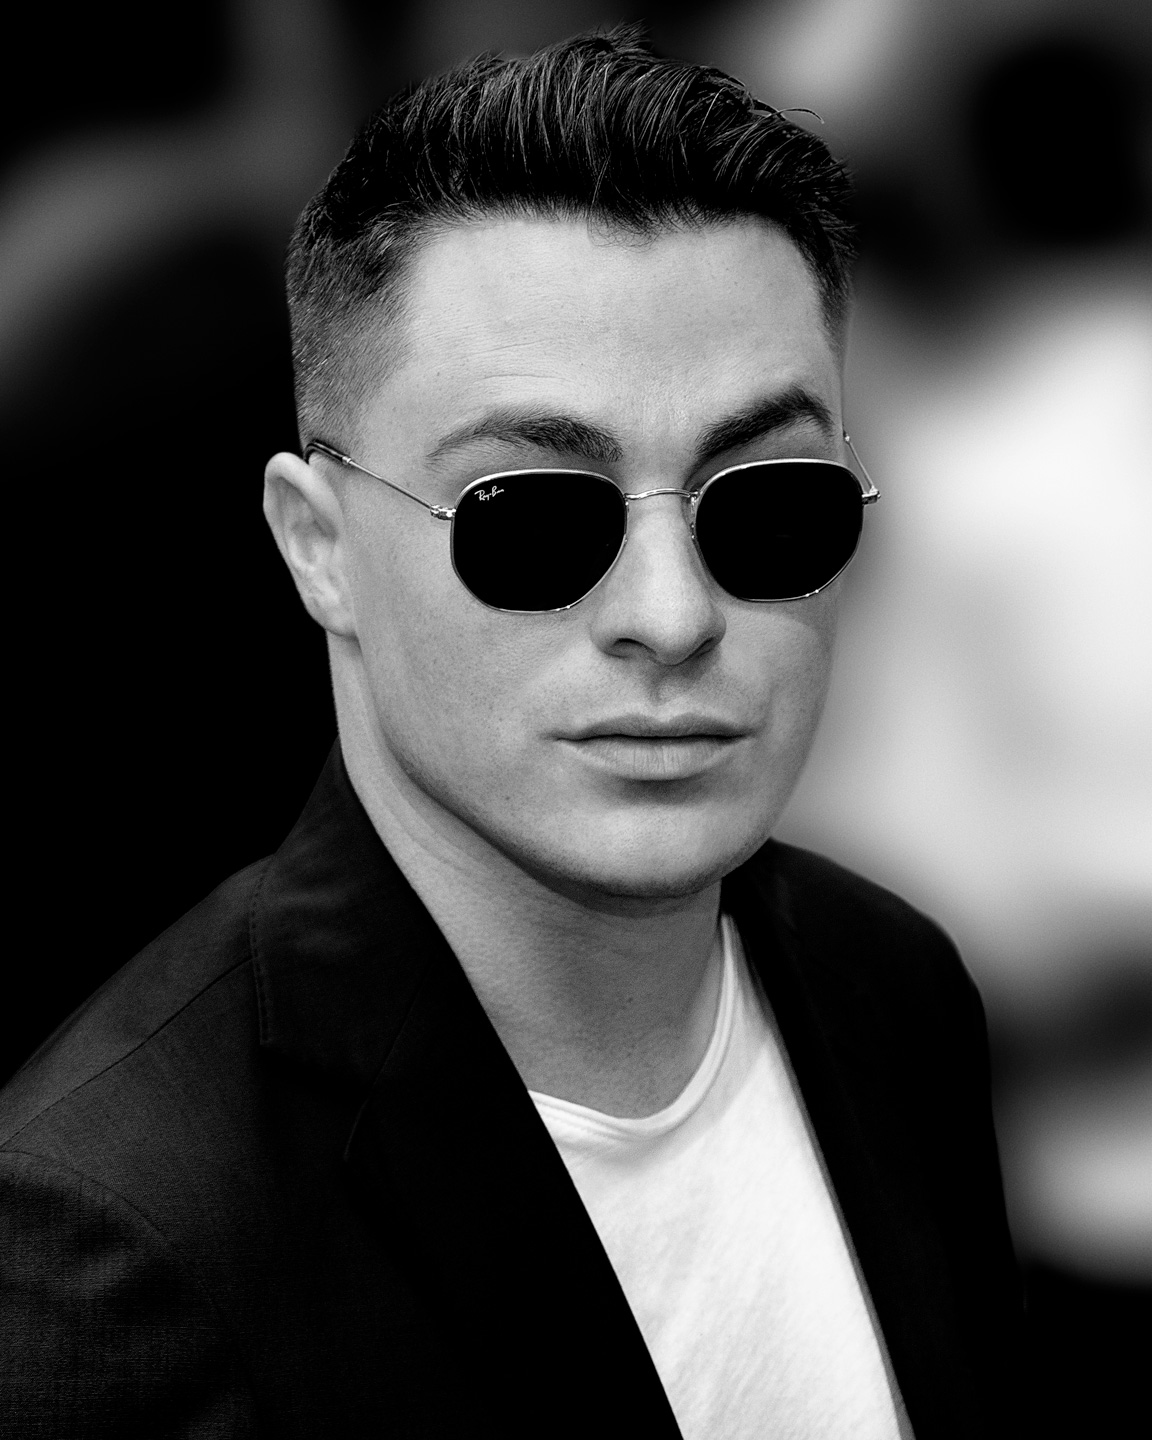 French Photographer Portrait Photography Colton Haynes / Ray-Ban